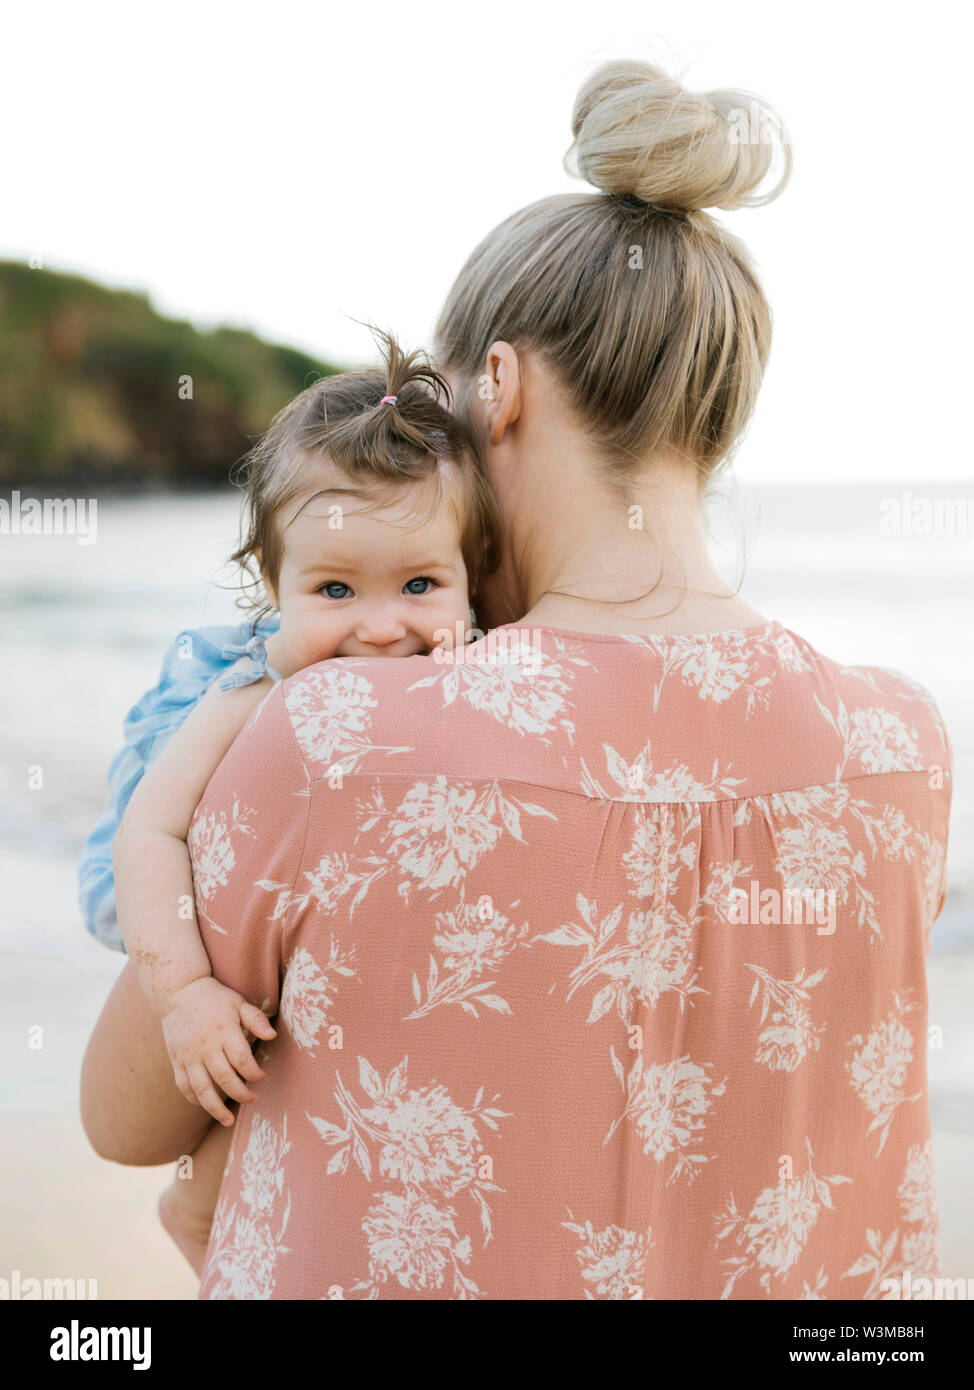 Woman holding baby daughter on beach Stock Photo